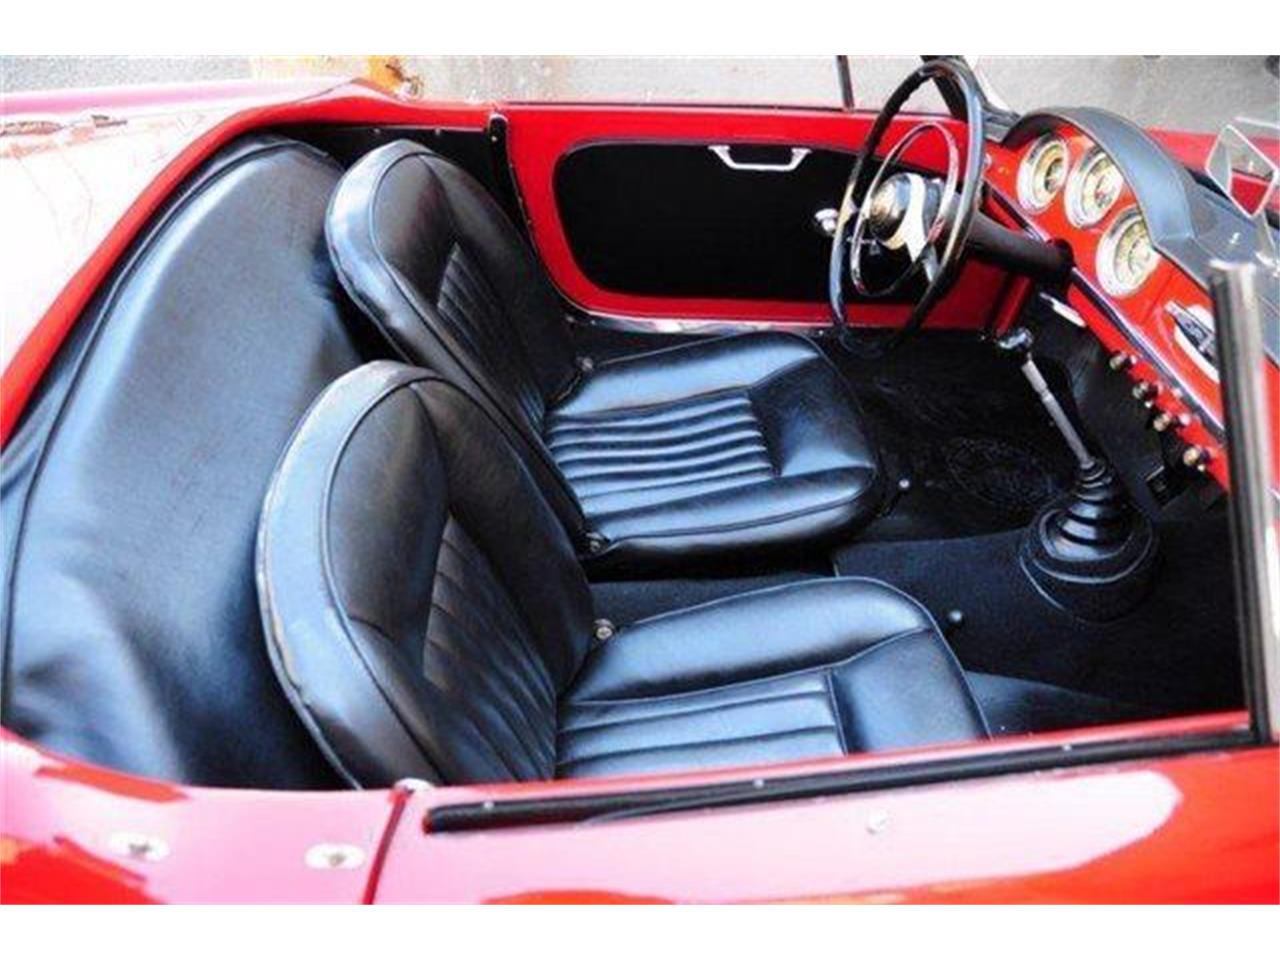 Large Picture of Classic '60 Alfa Romeo Giulietta Spider located in California - $102,500.00 Offered by Chequered Flag International - E98E